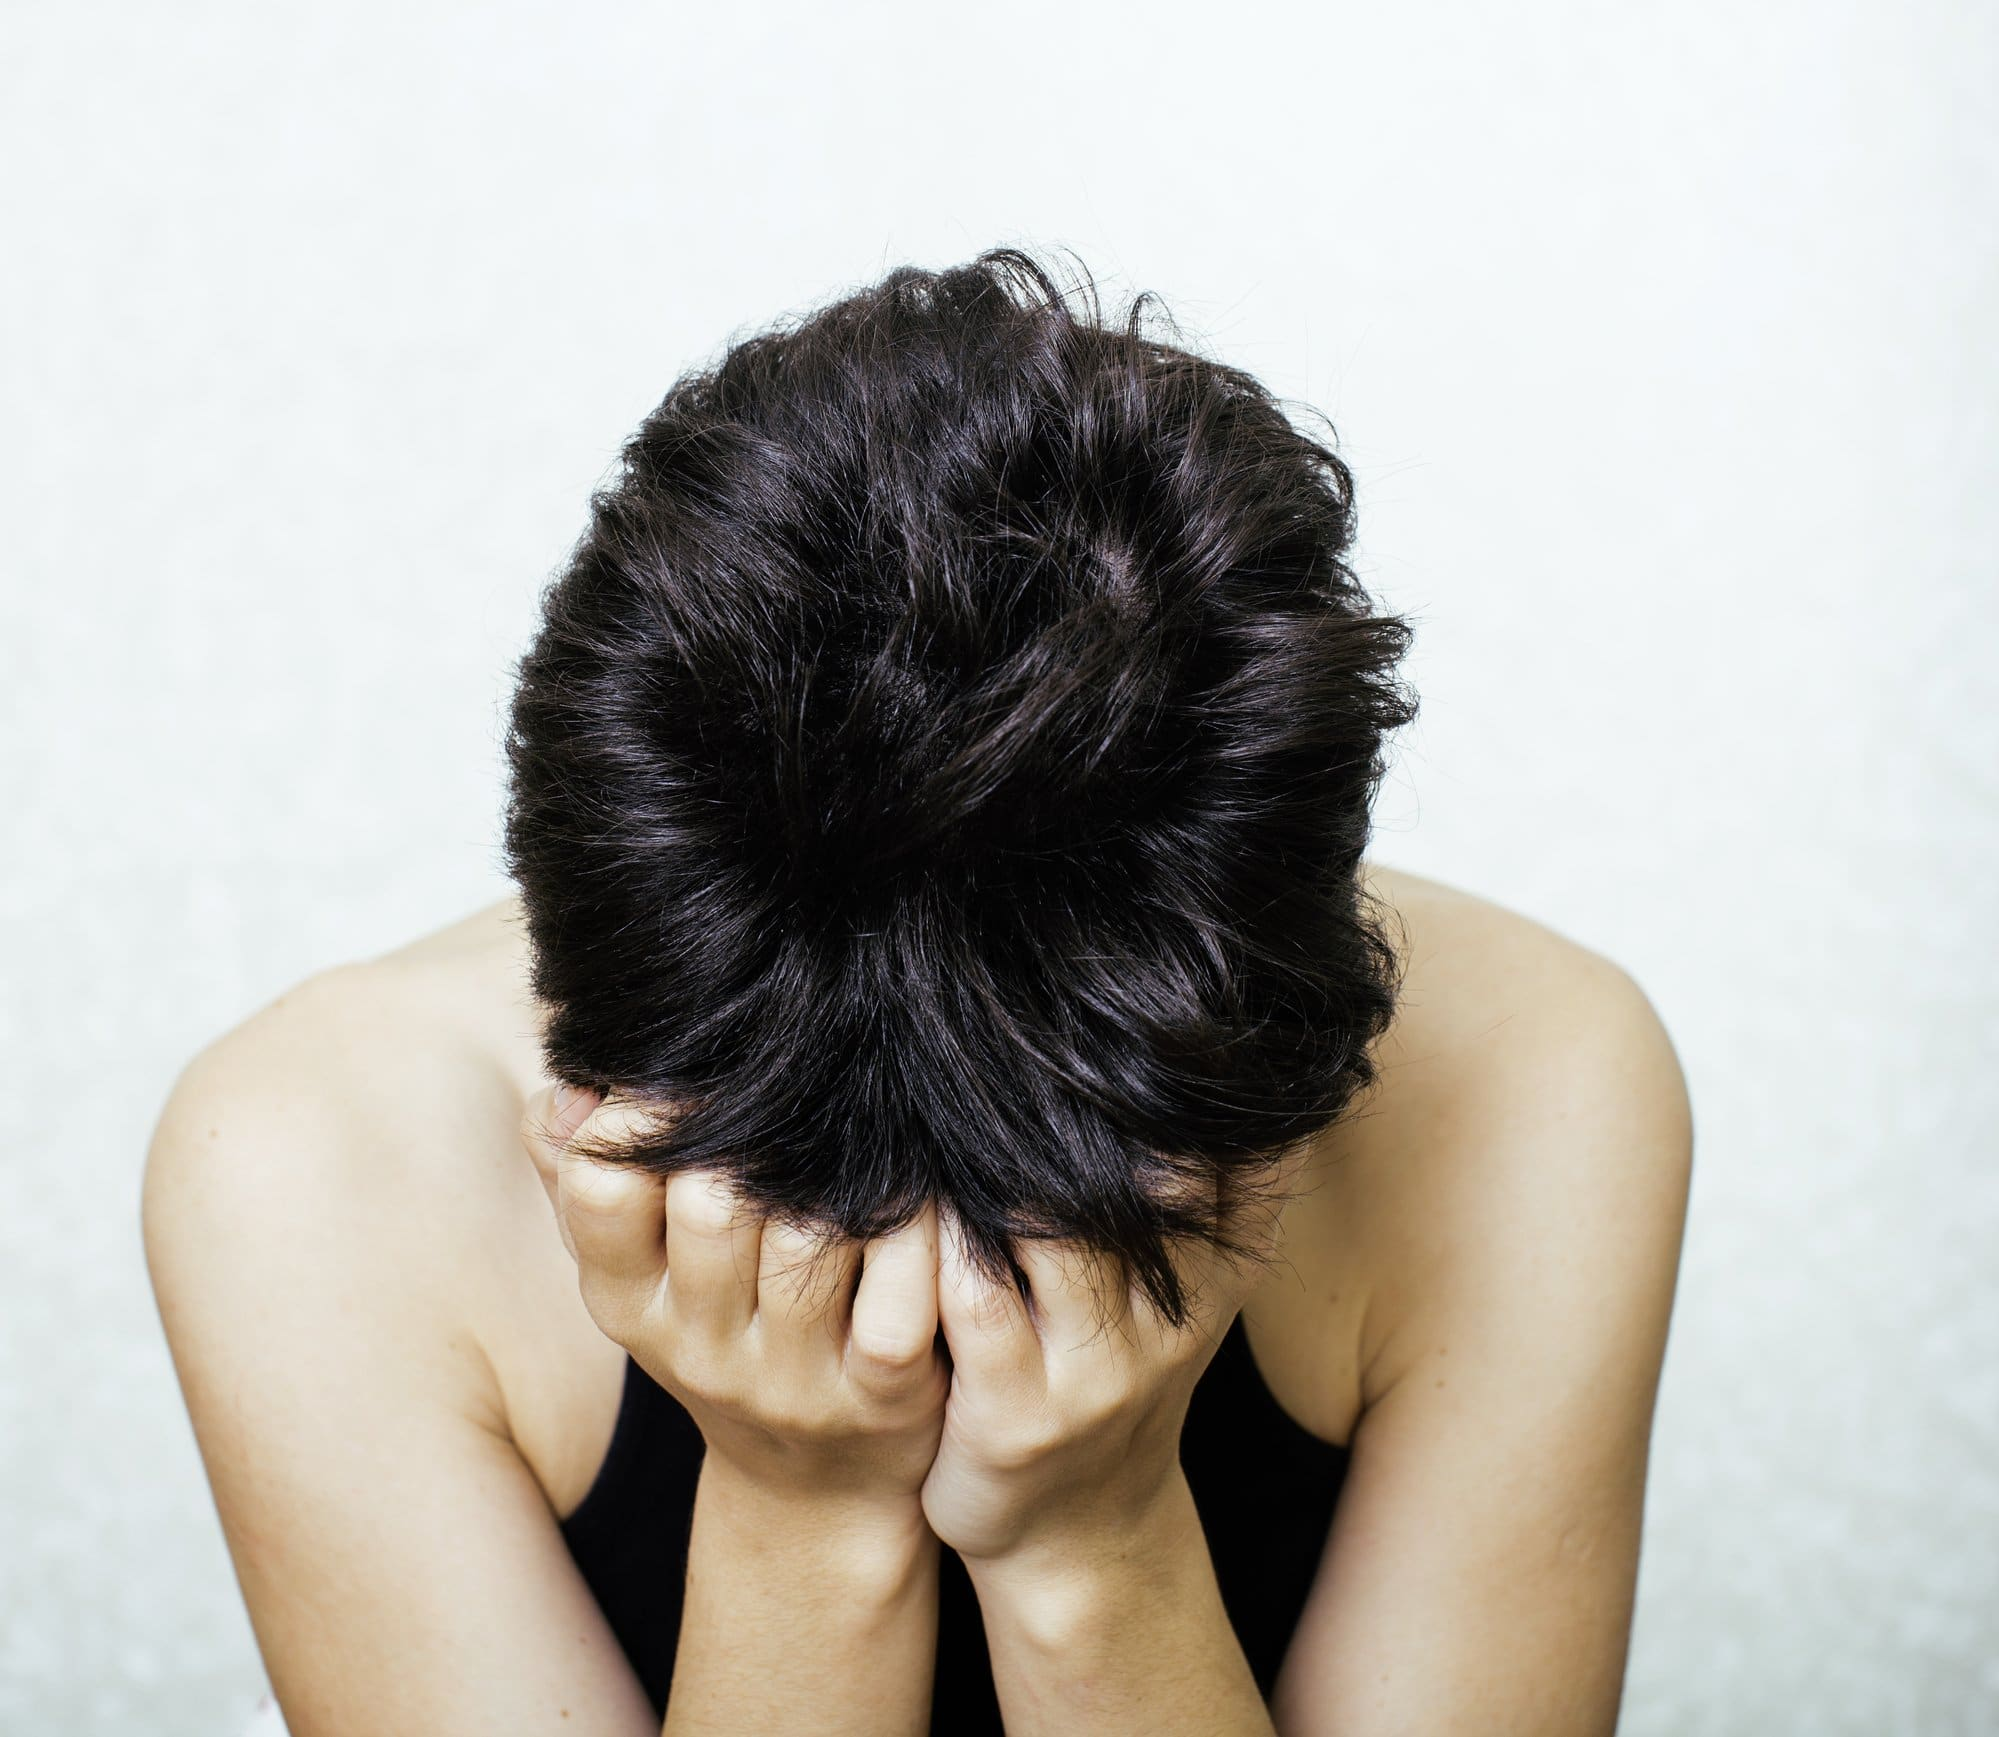 Identifying a Loved One's Struggle With Signs of Heroin Addiction